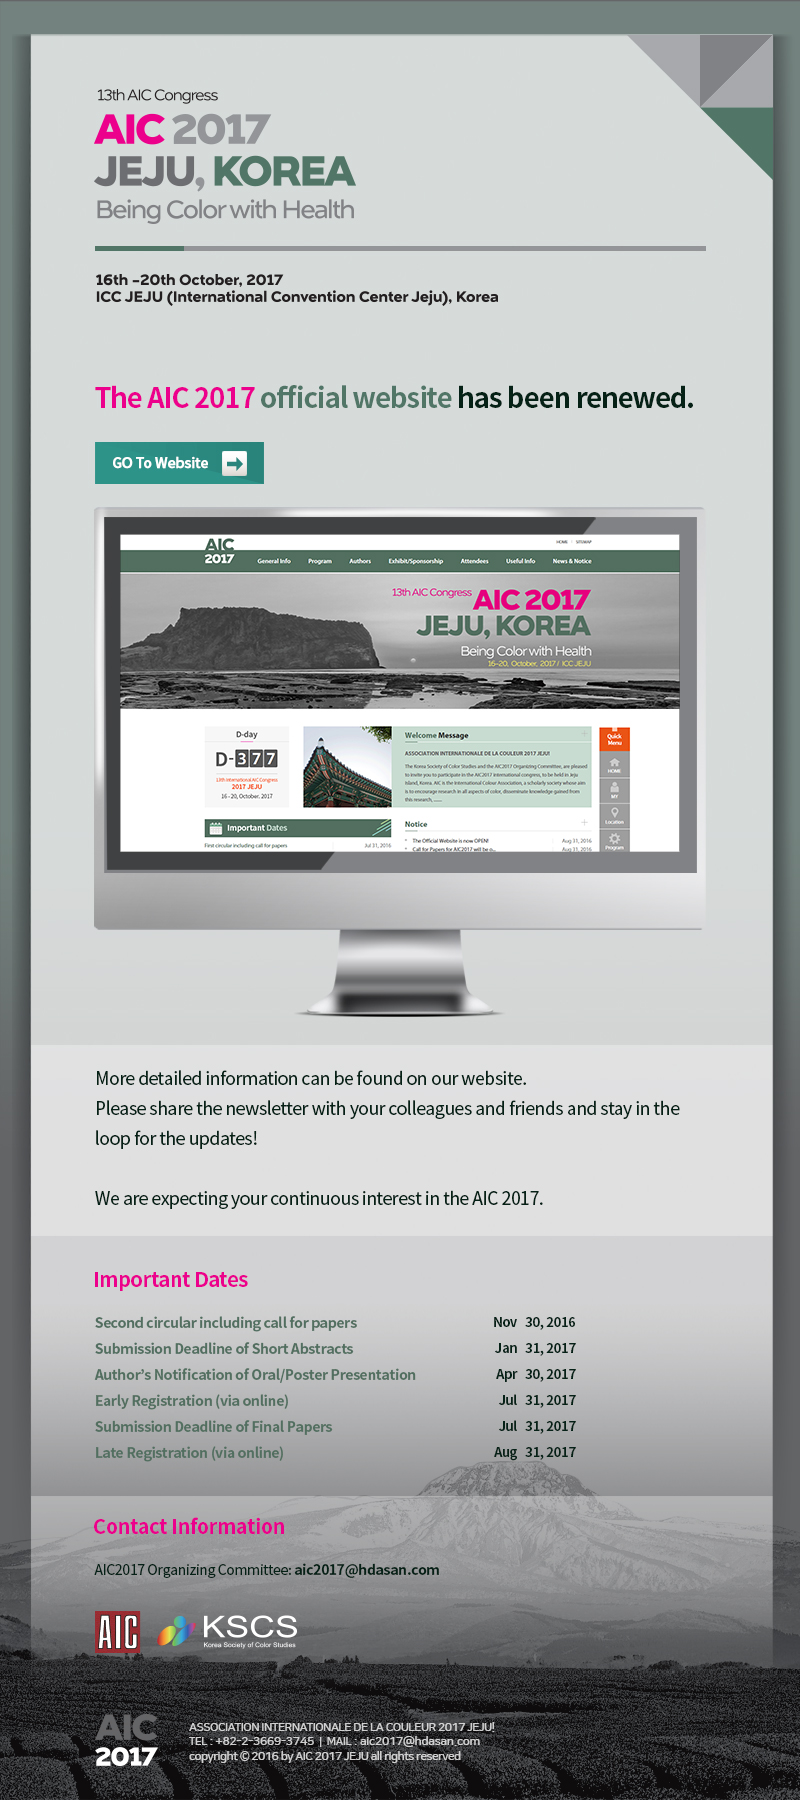 The AIC 2017 official website has been renewed.